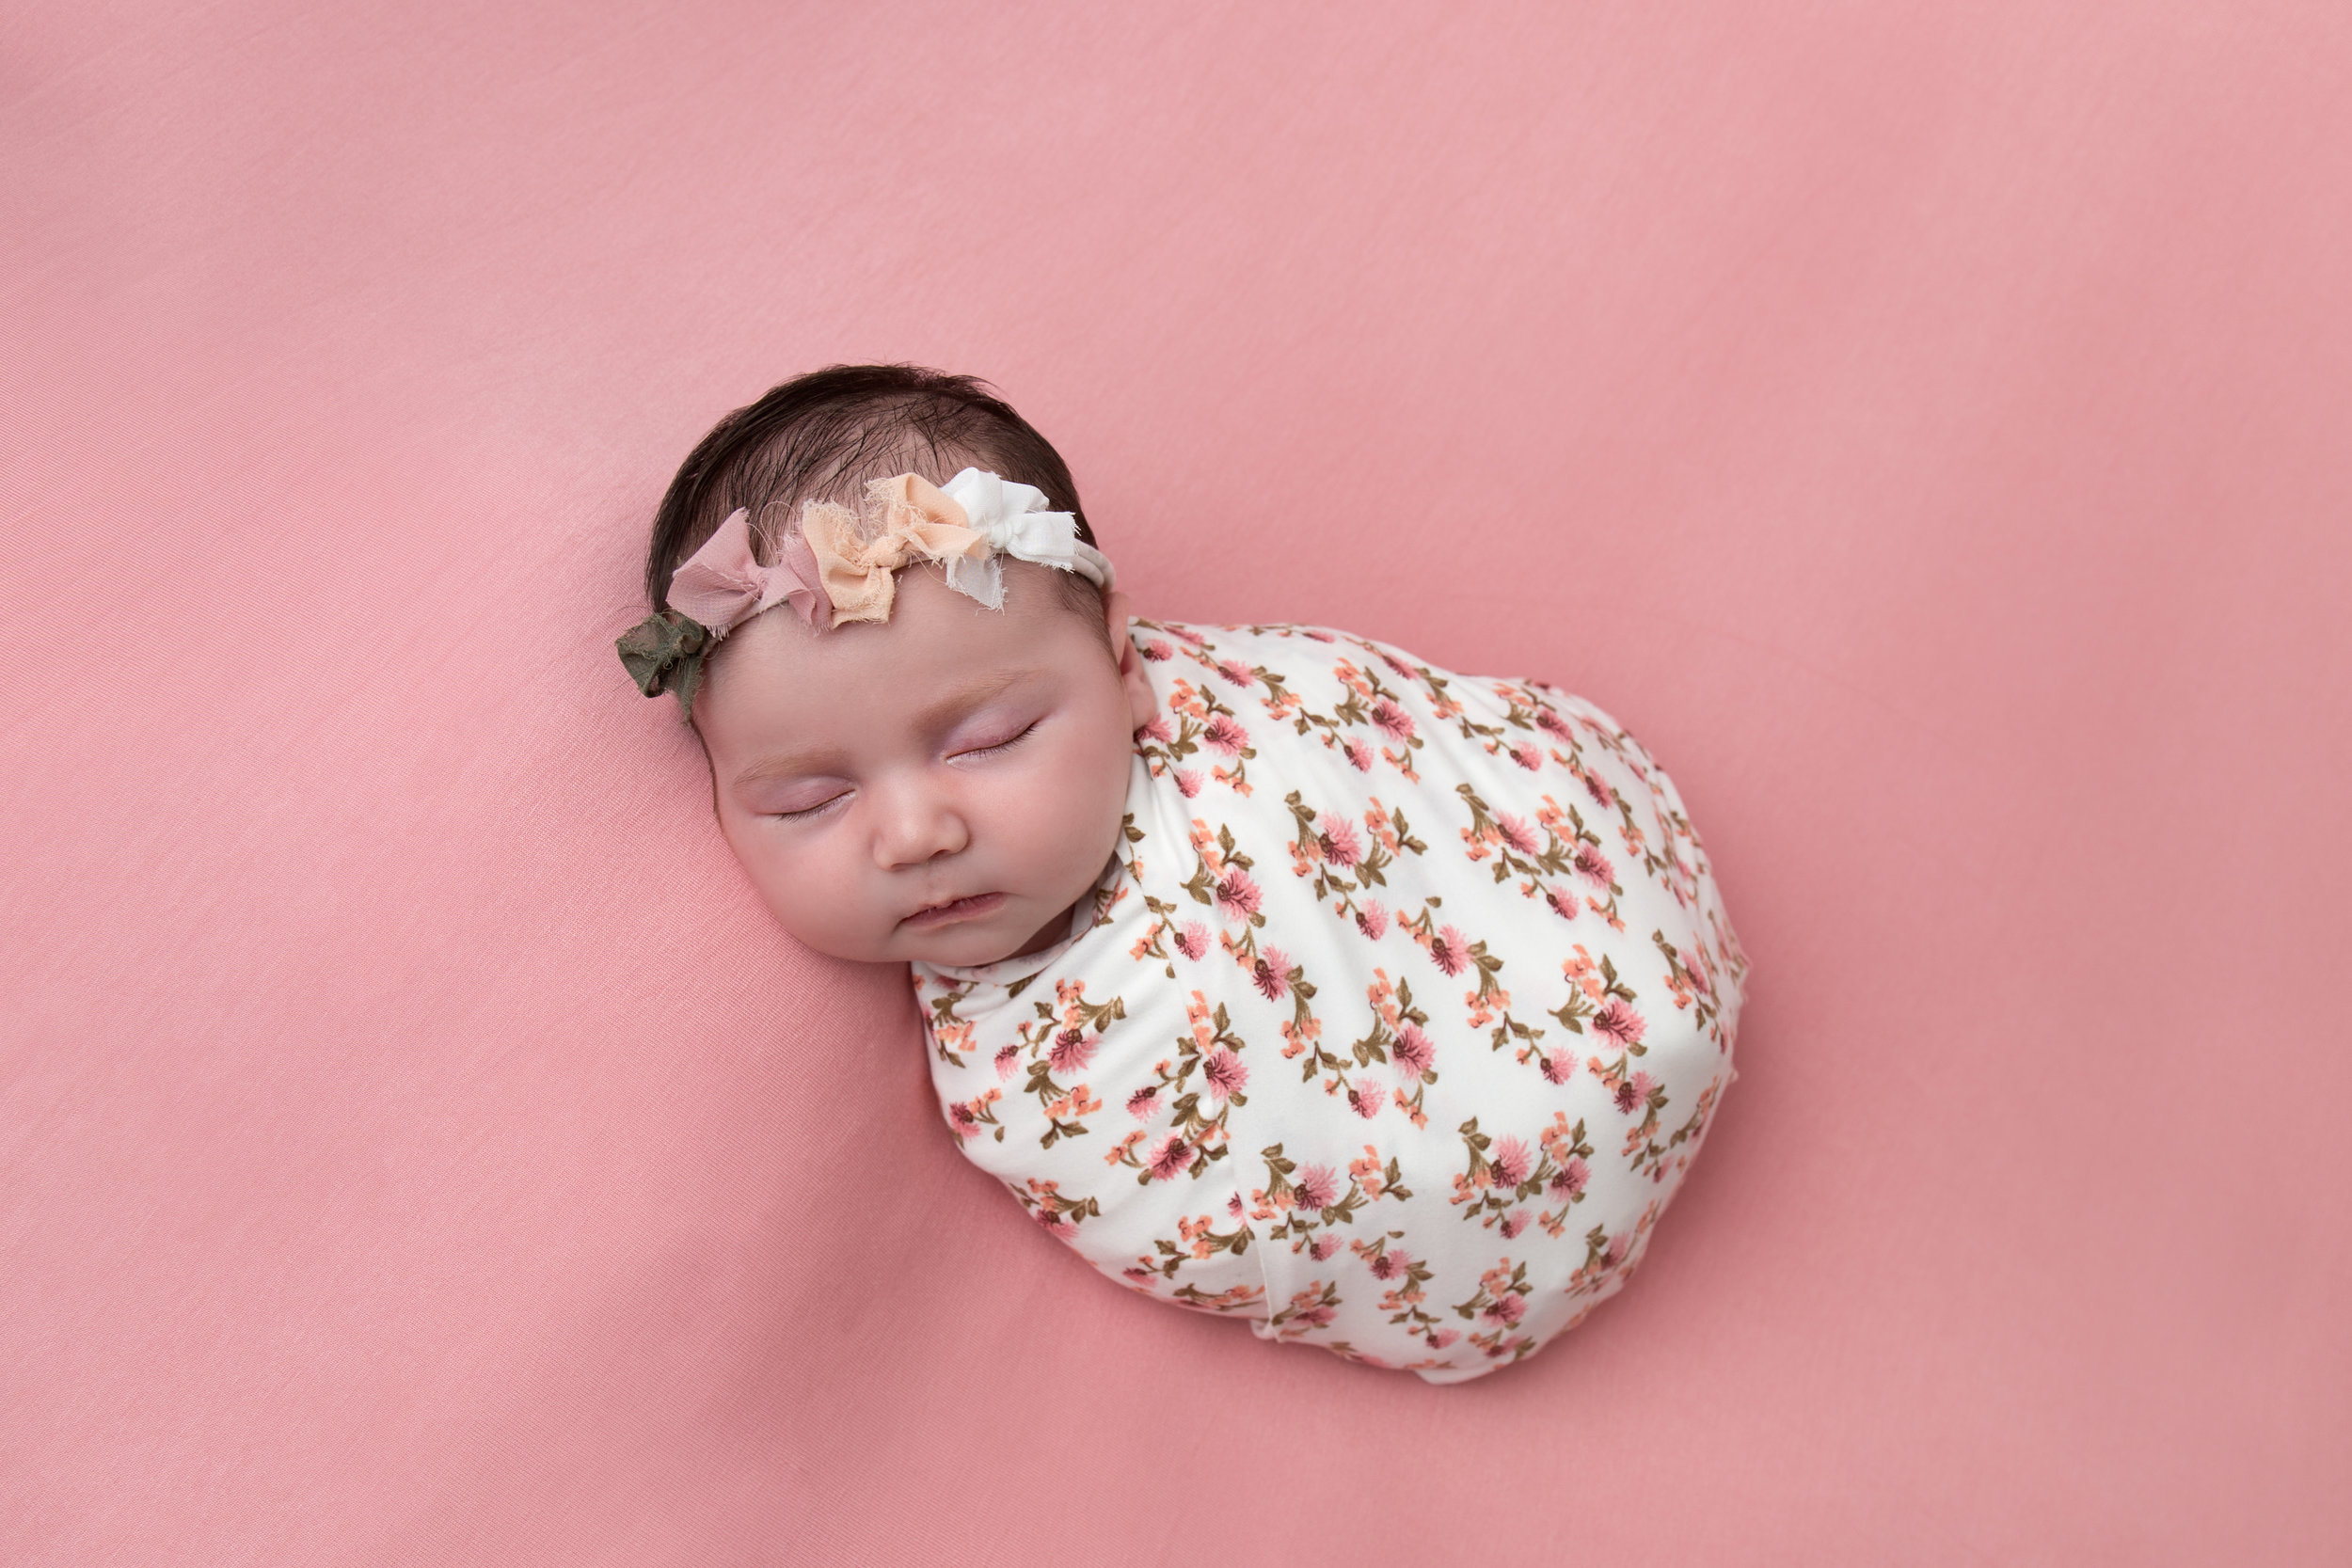 newborn-photography-children-baby-milton keynes-cake-smash-5.jpg